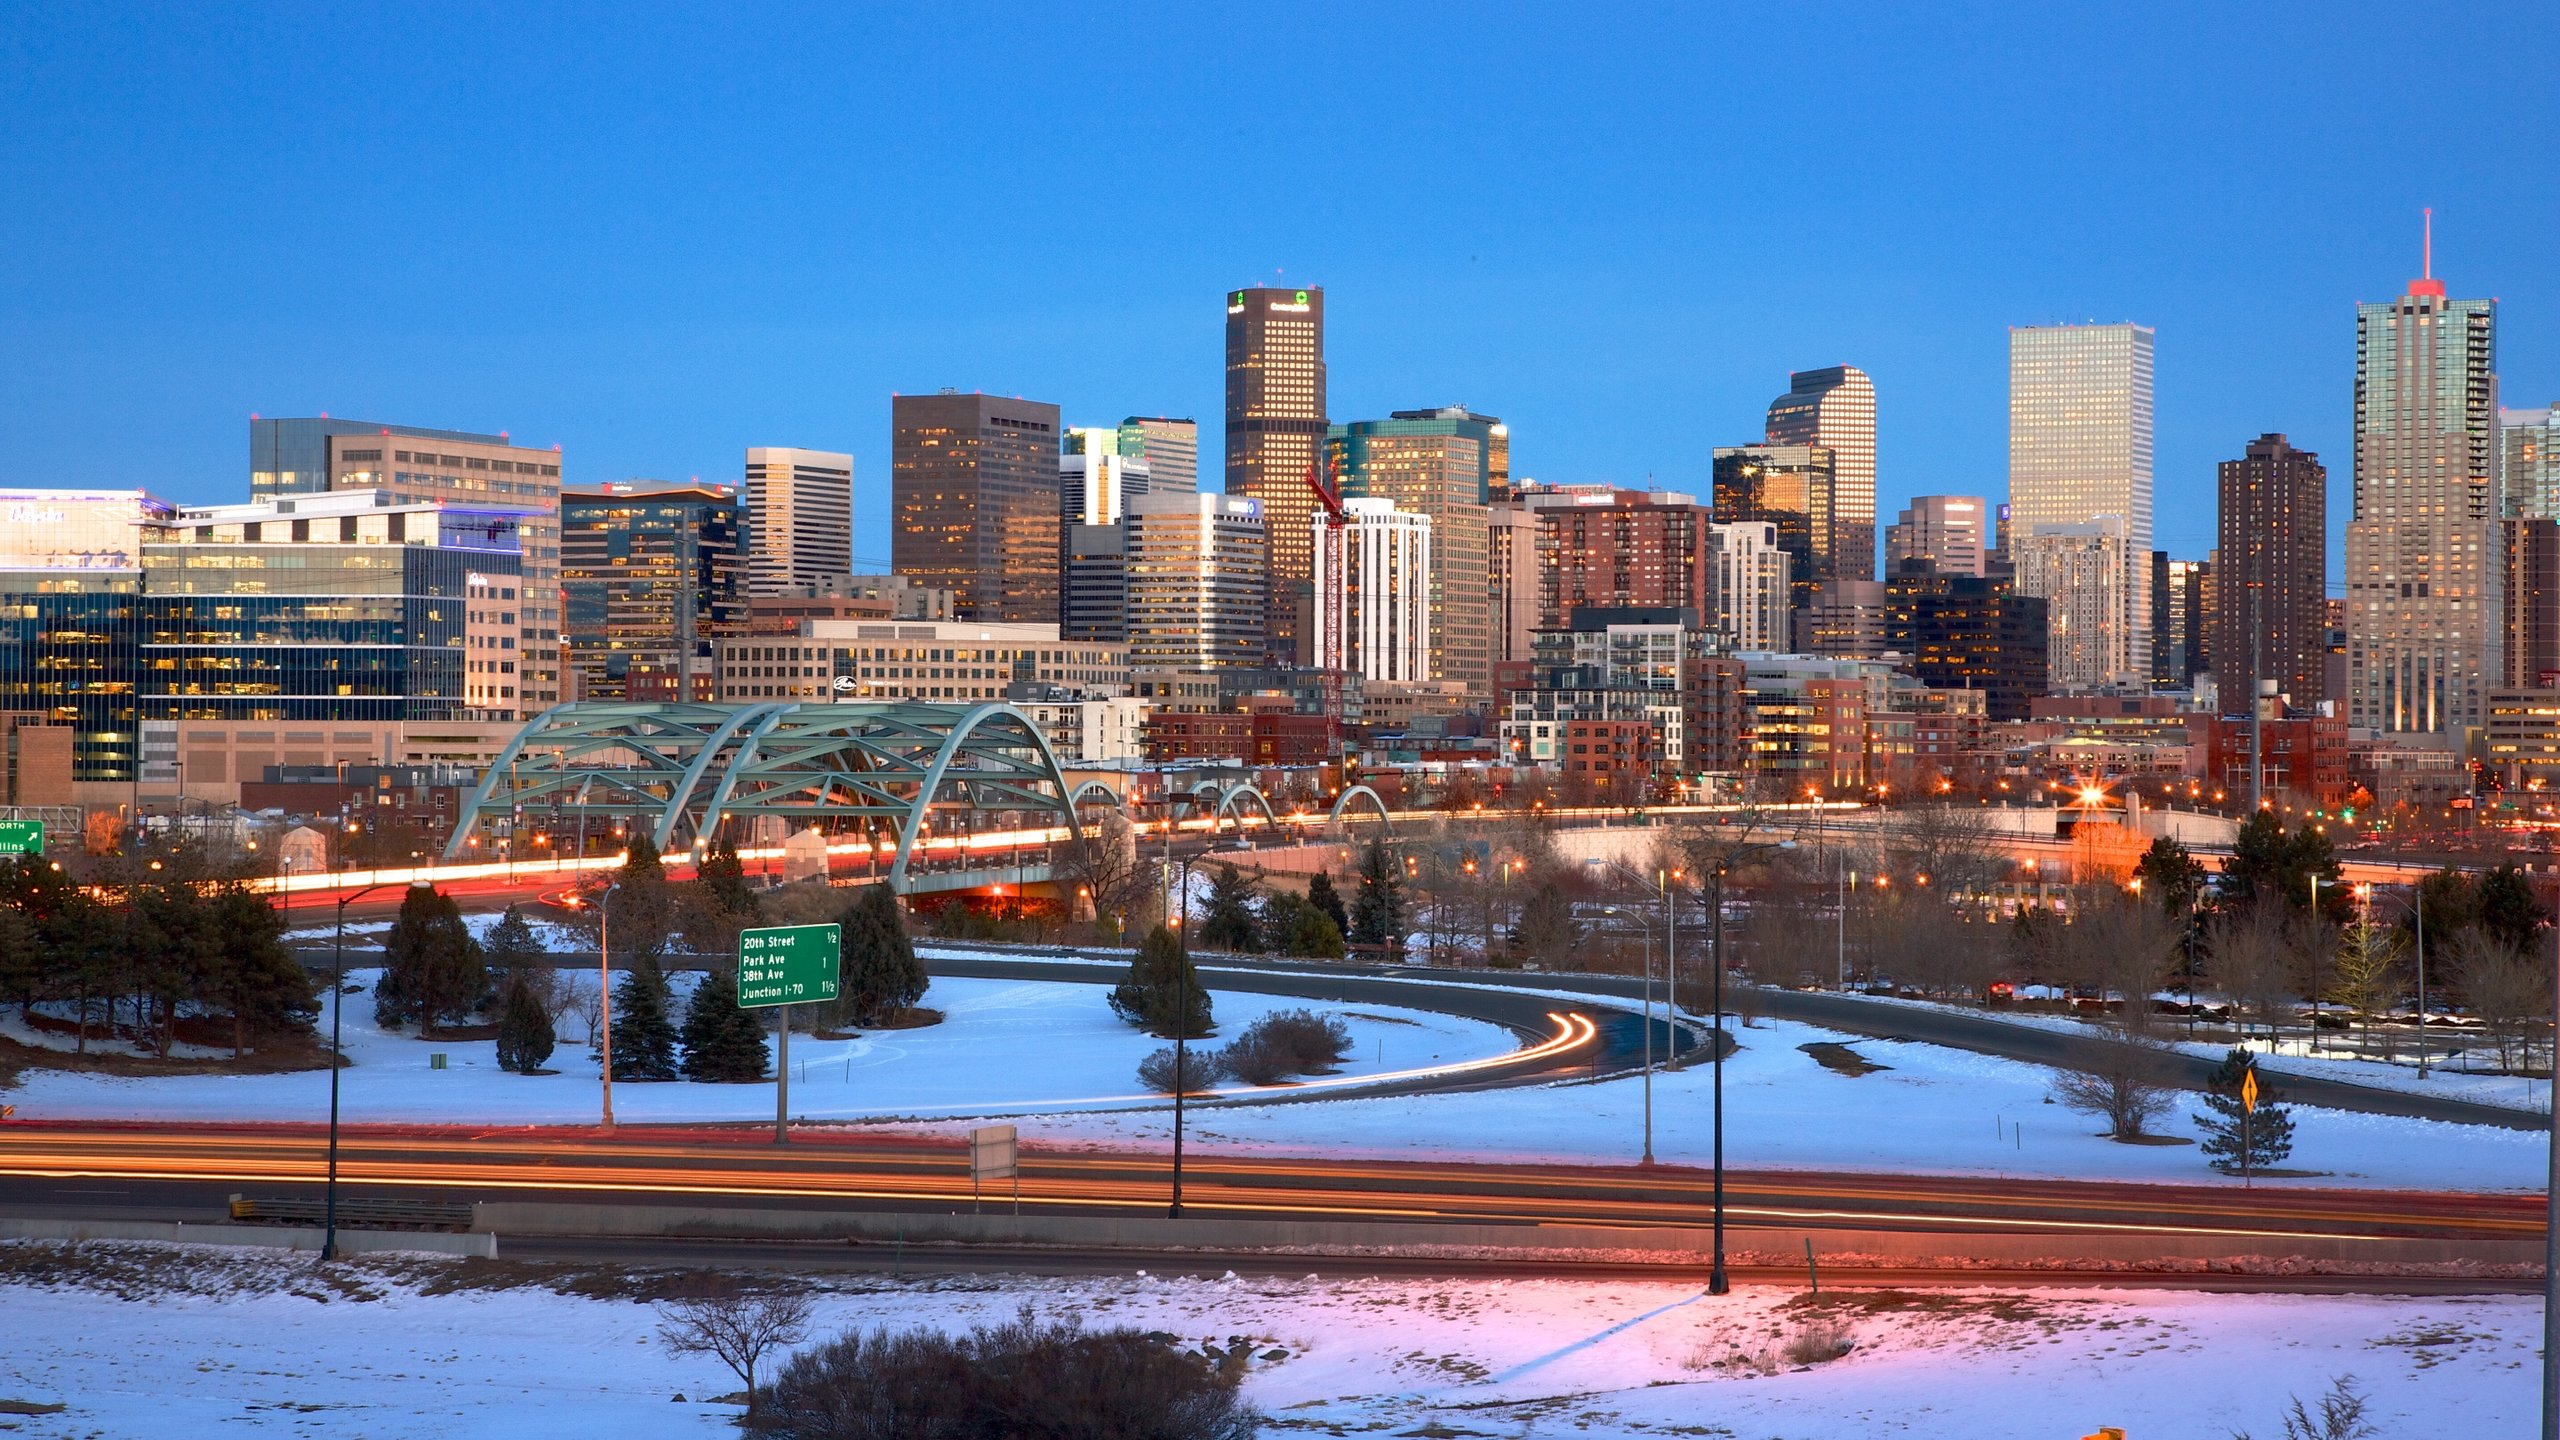 The 10 Best Hotels in Denver, Colorado $70 for 2019 | Expedia